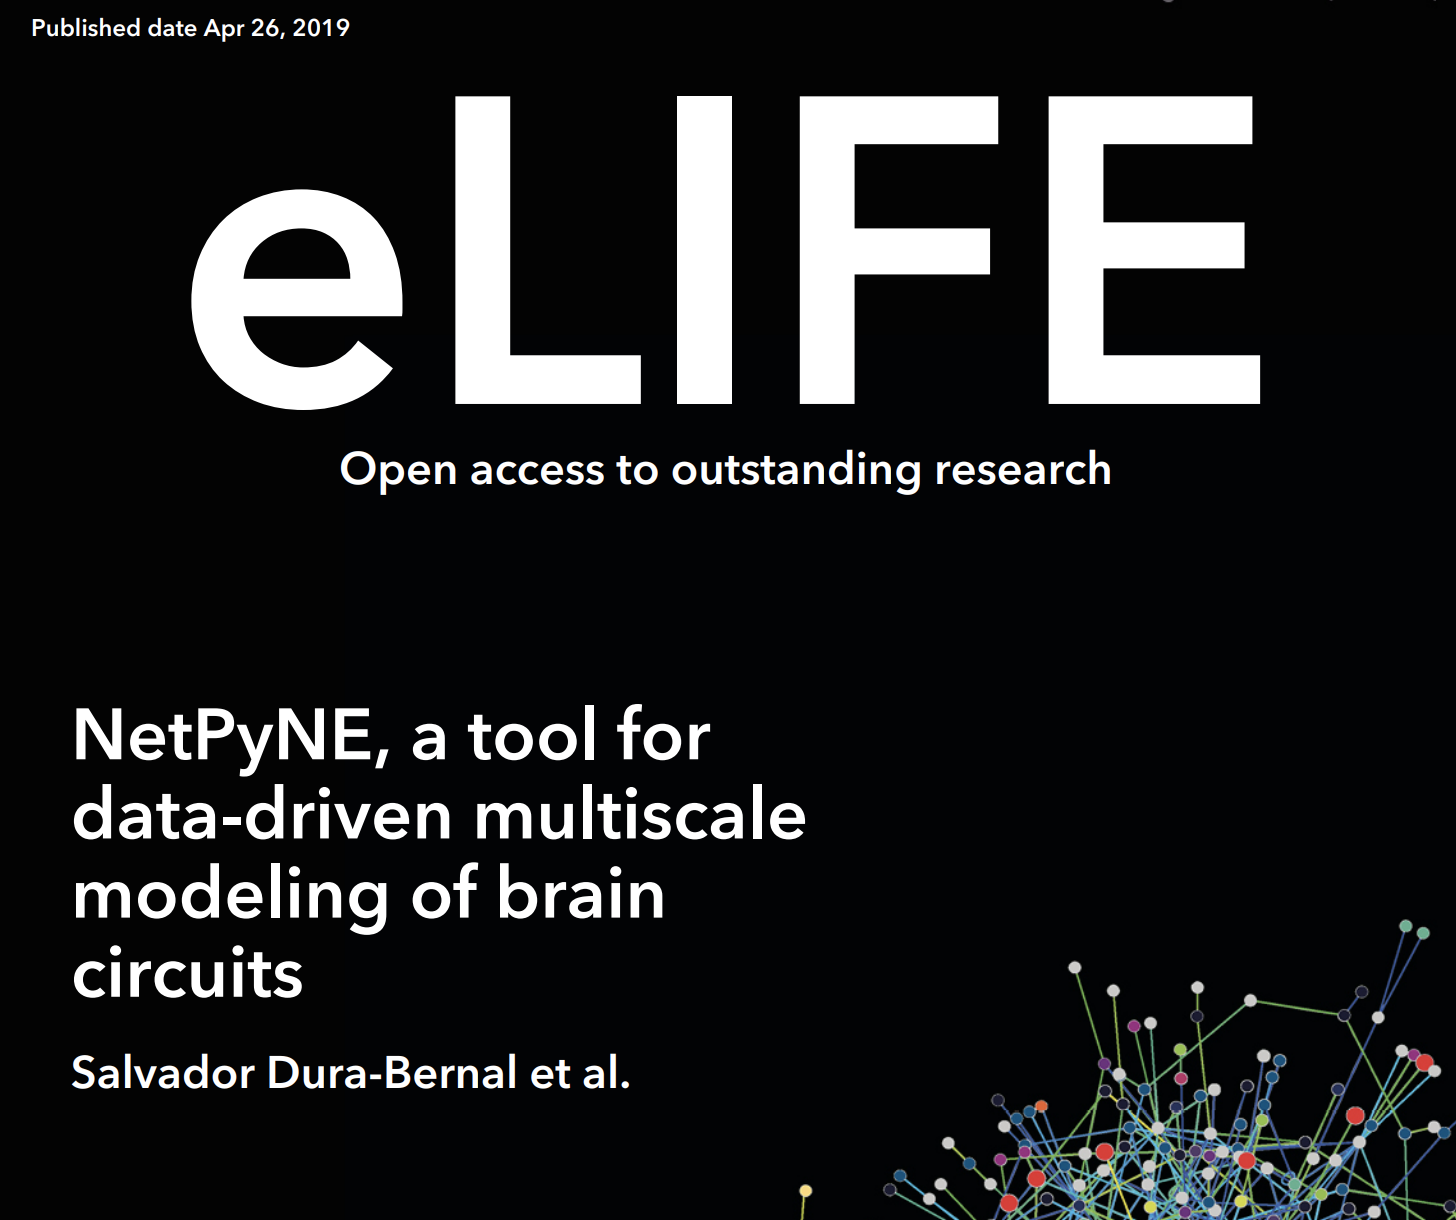 New publication in eLife on the NetPyNE tool | Neurosim lab